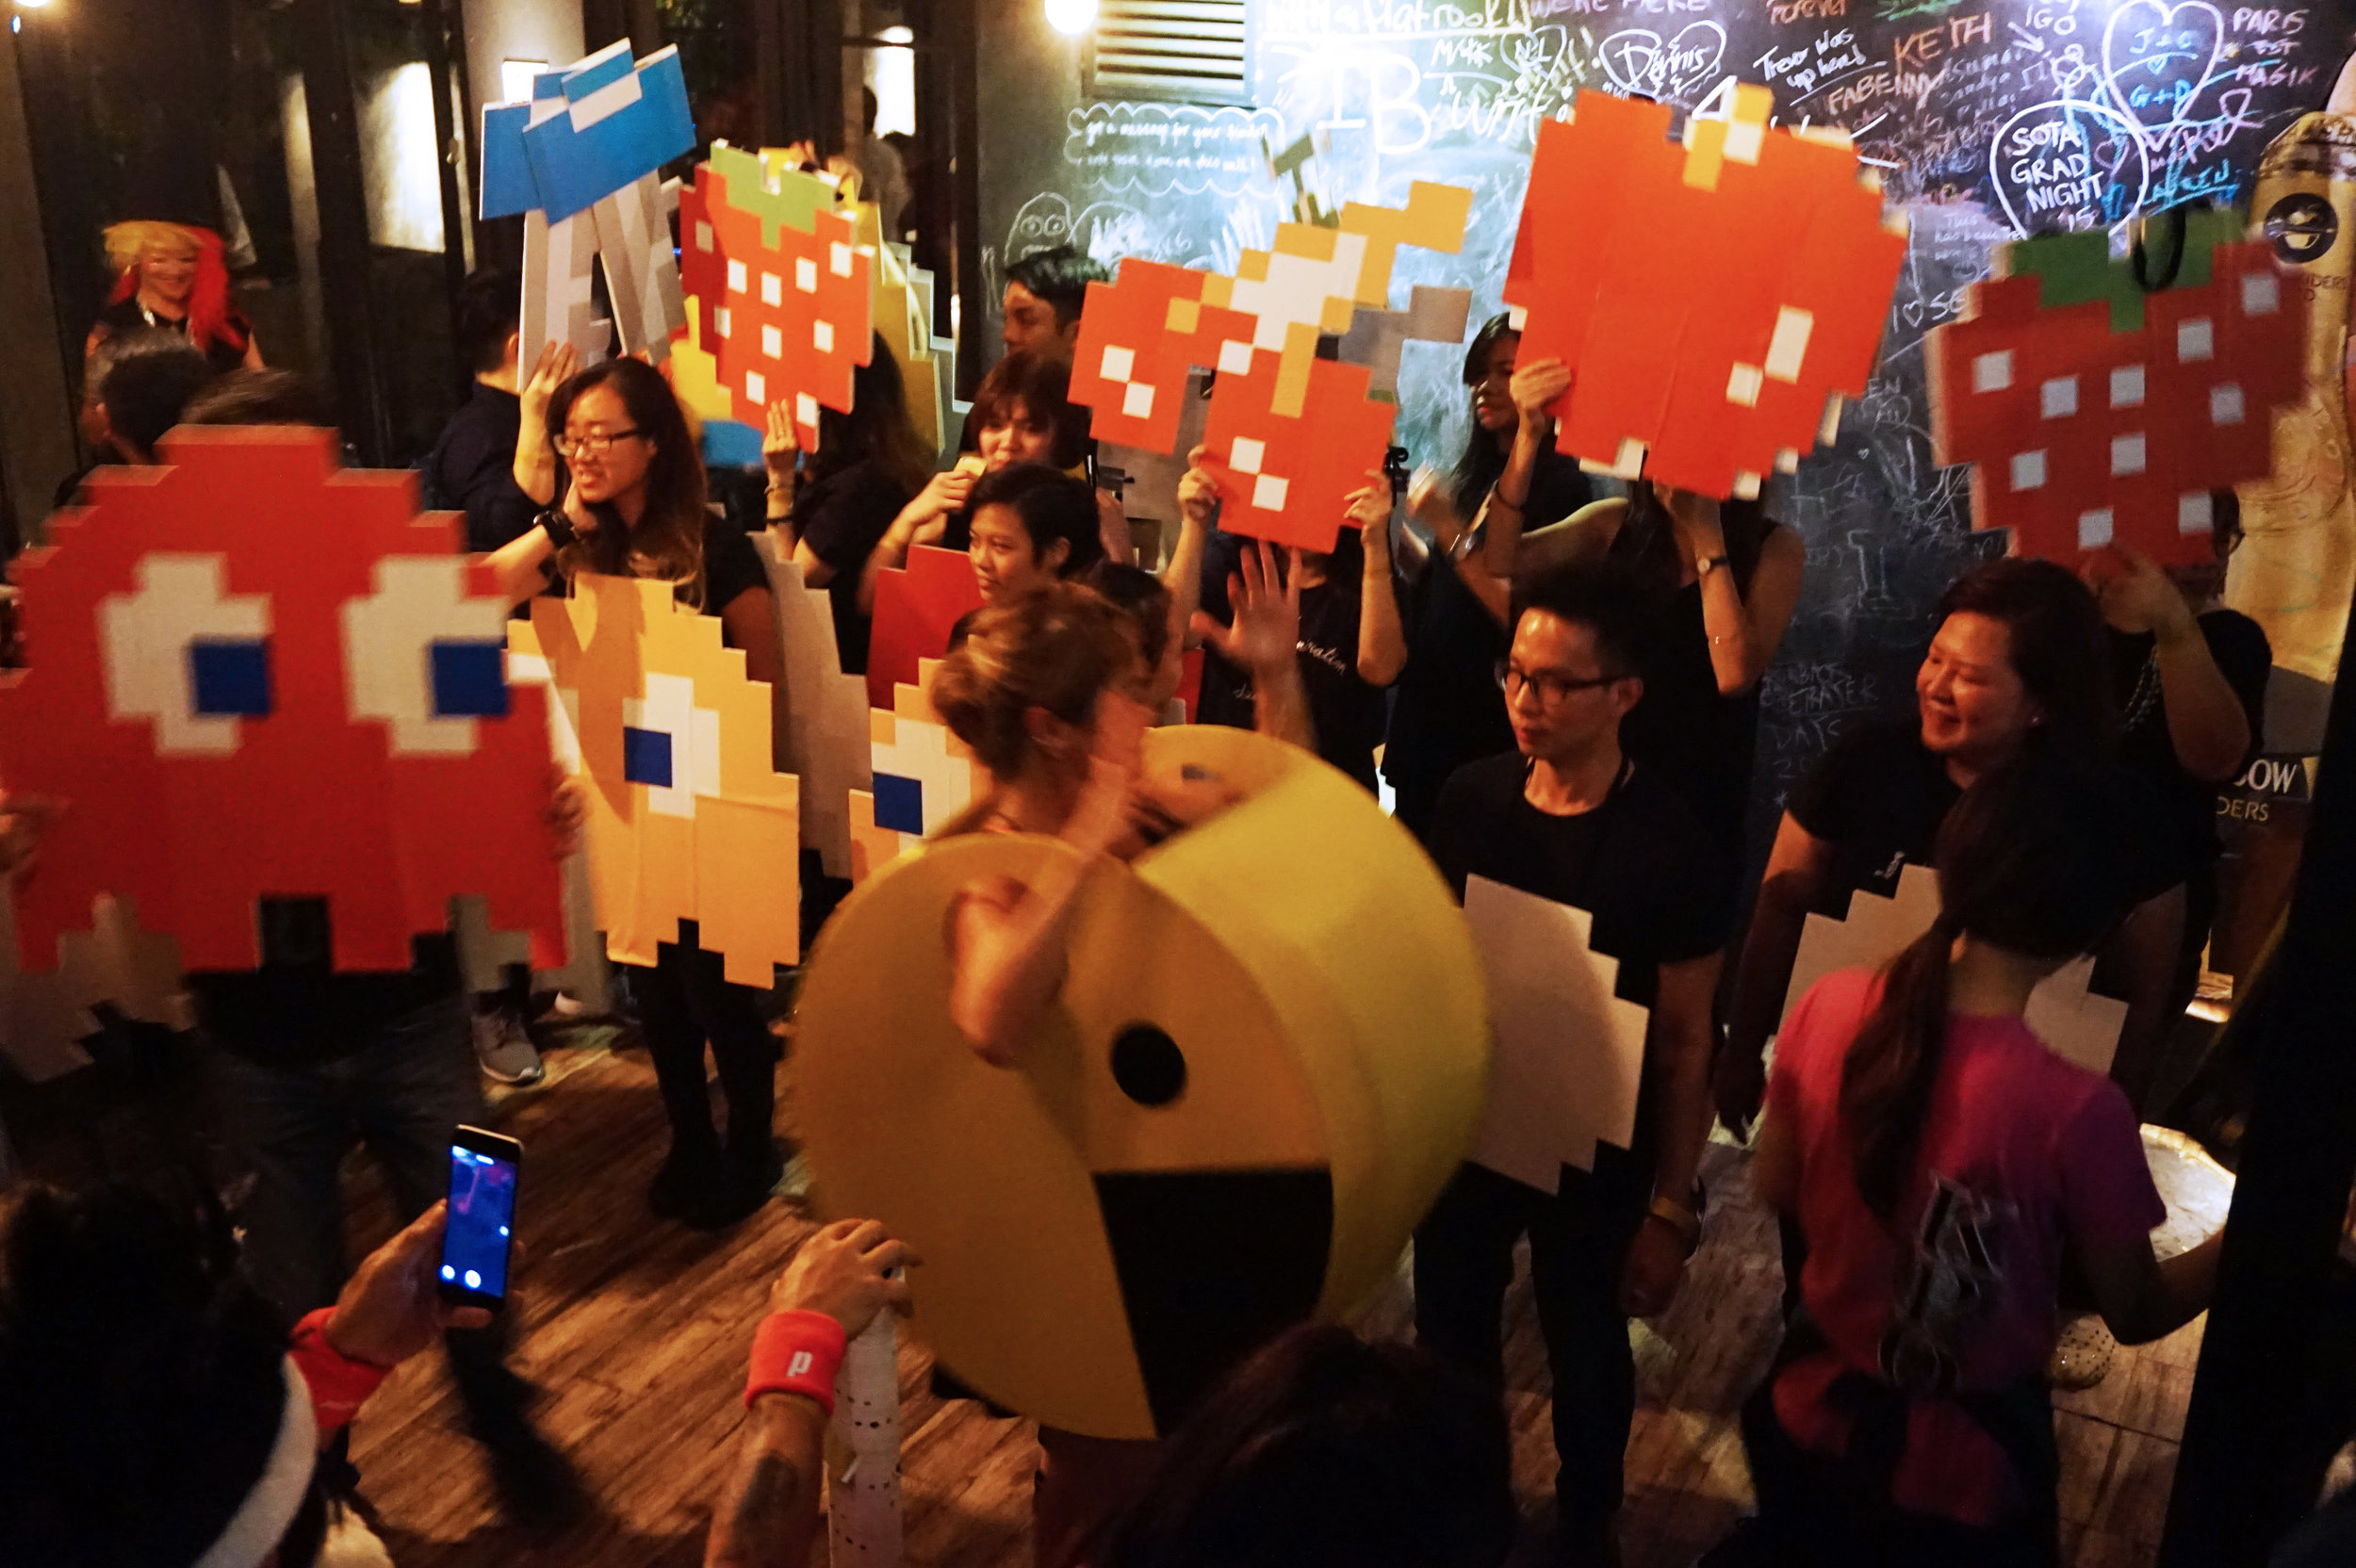 Our CCO as Pac-Man